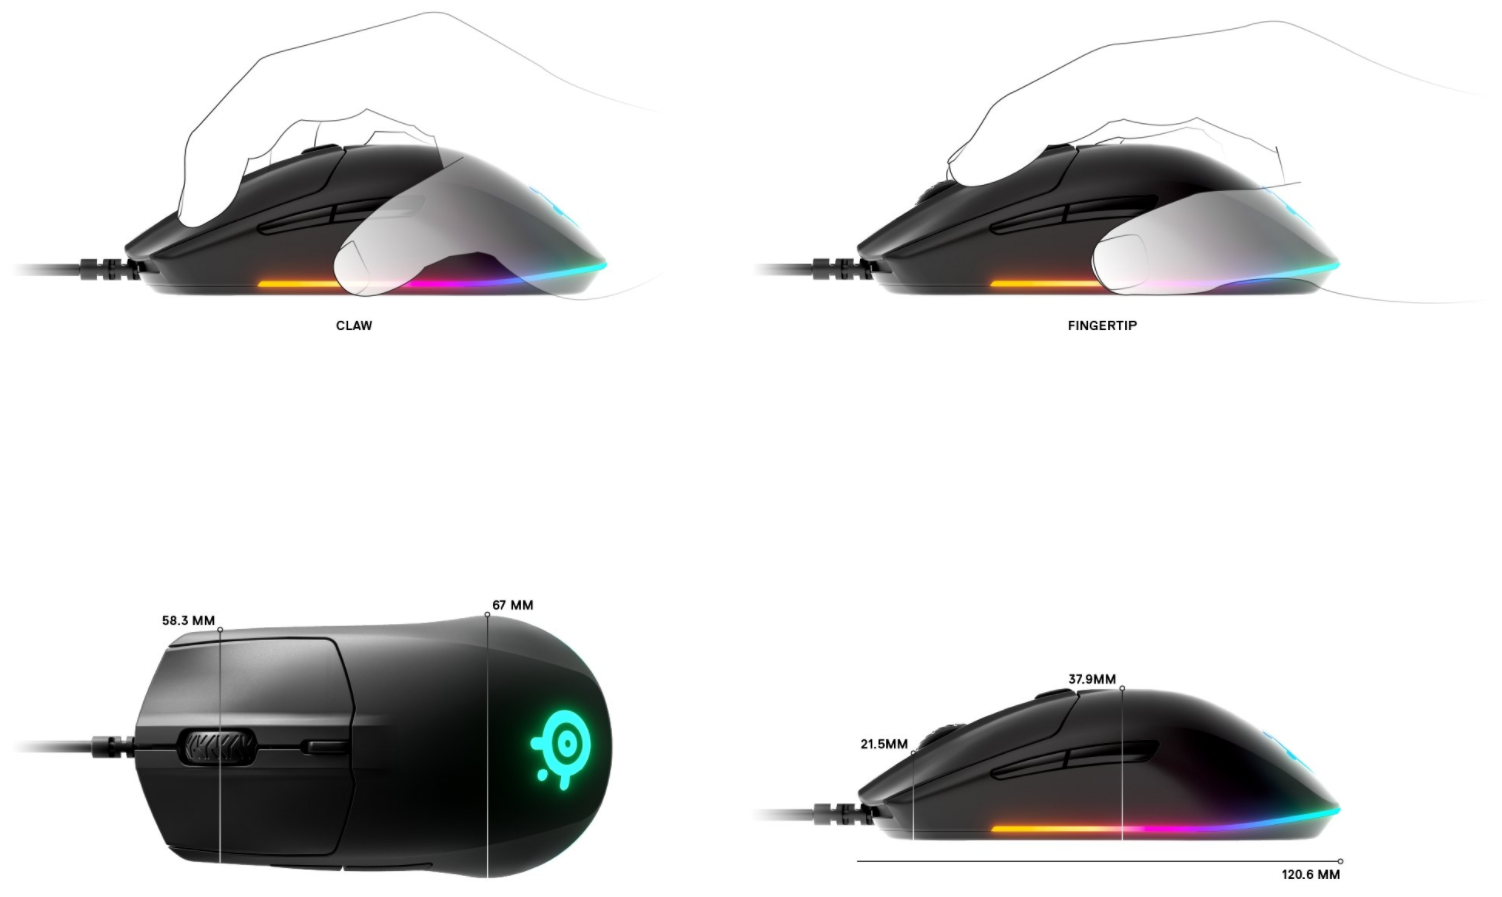 Recommended Grip Styles - The right-handed shape of the Rival 3 is designed for a player's highest demand for comfort. Whether you deploy a claw or fingertip grip the shape will provide perfect comfort for long and intense gaming sessions.